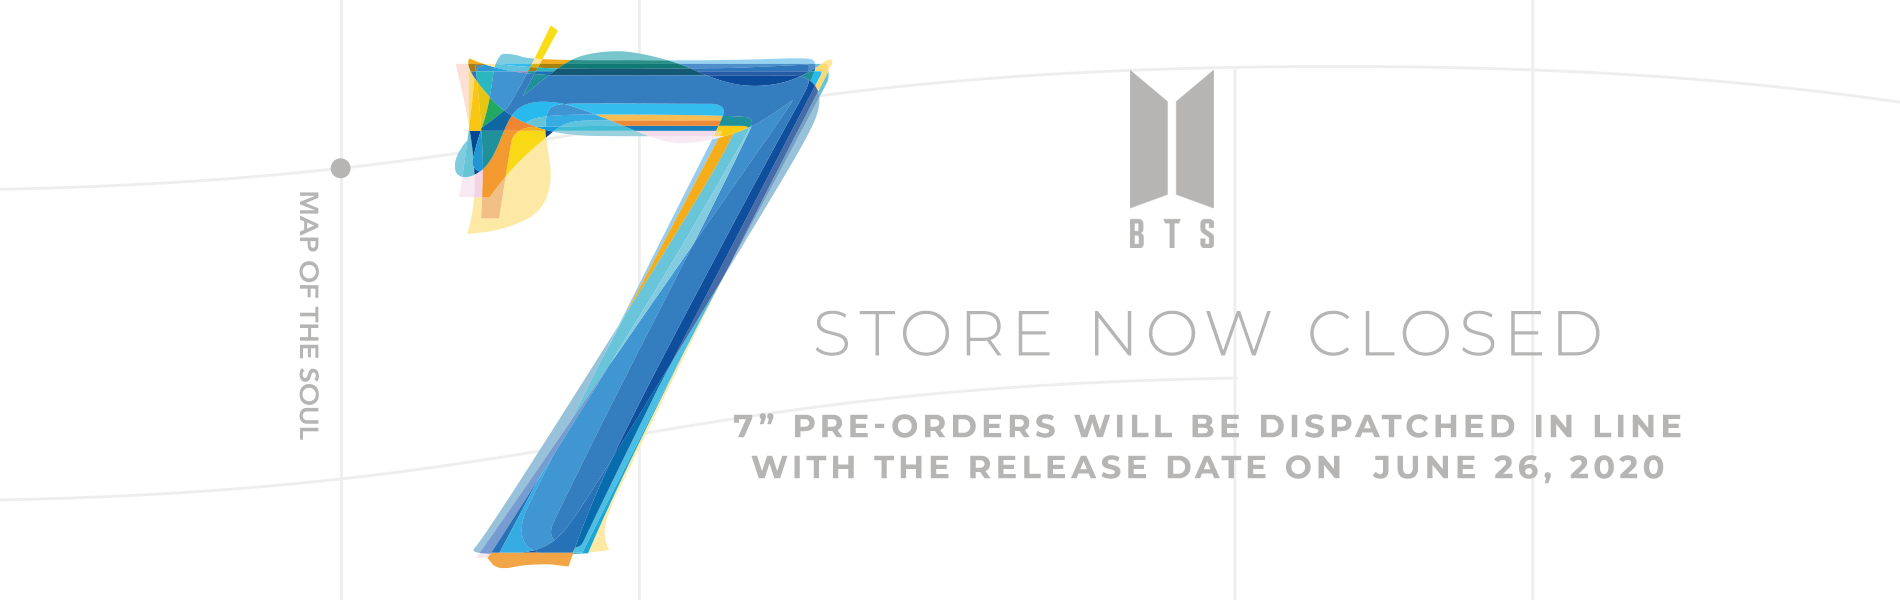 BTS UK store logo